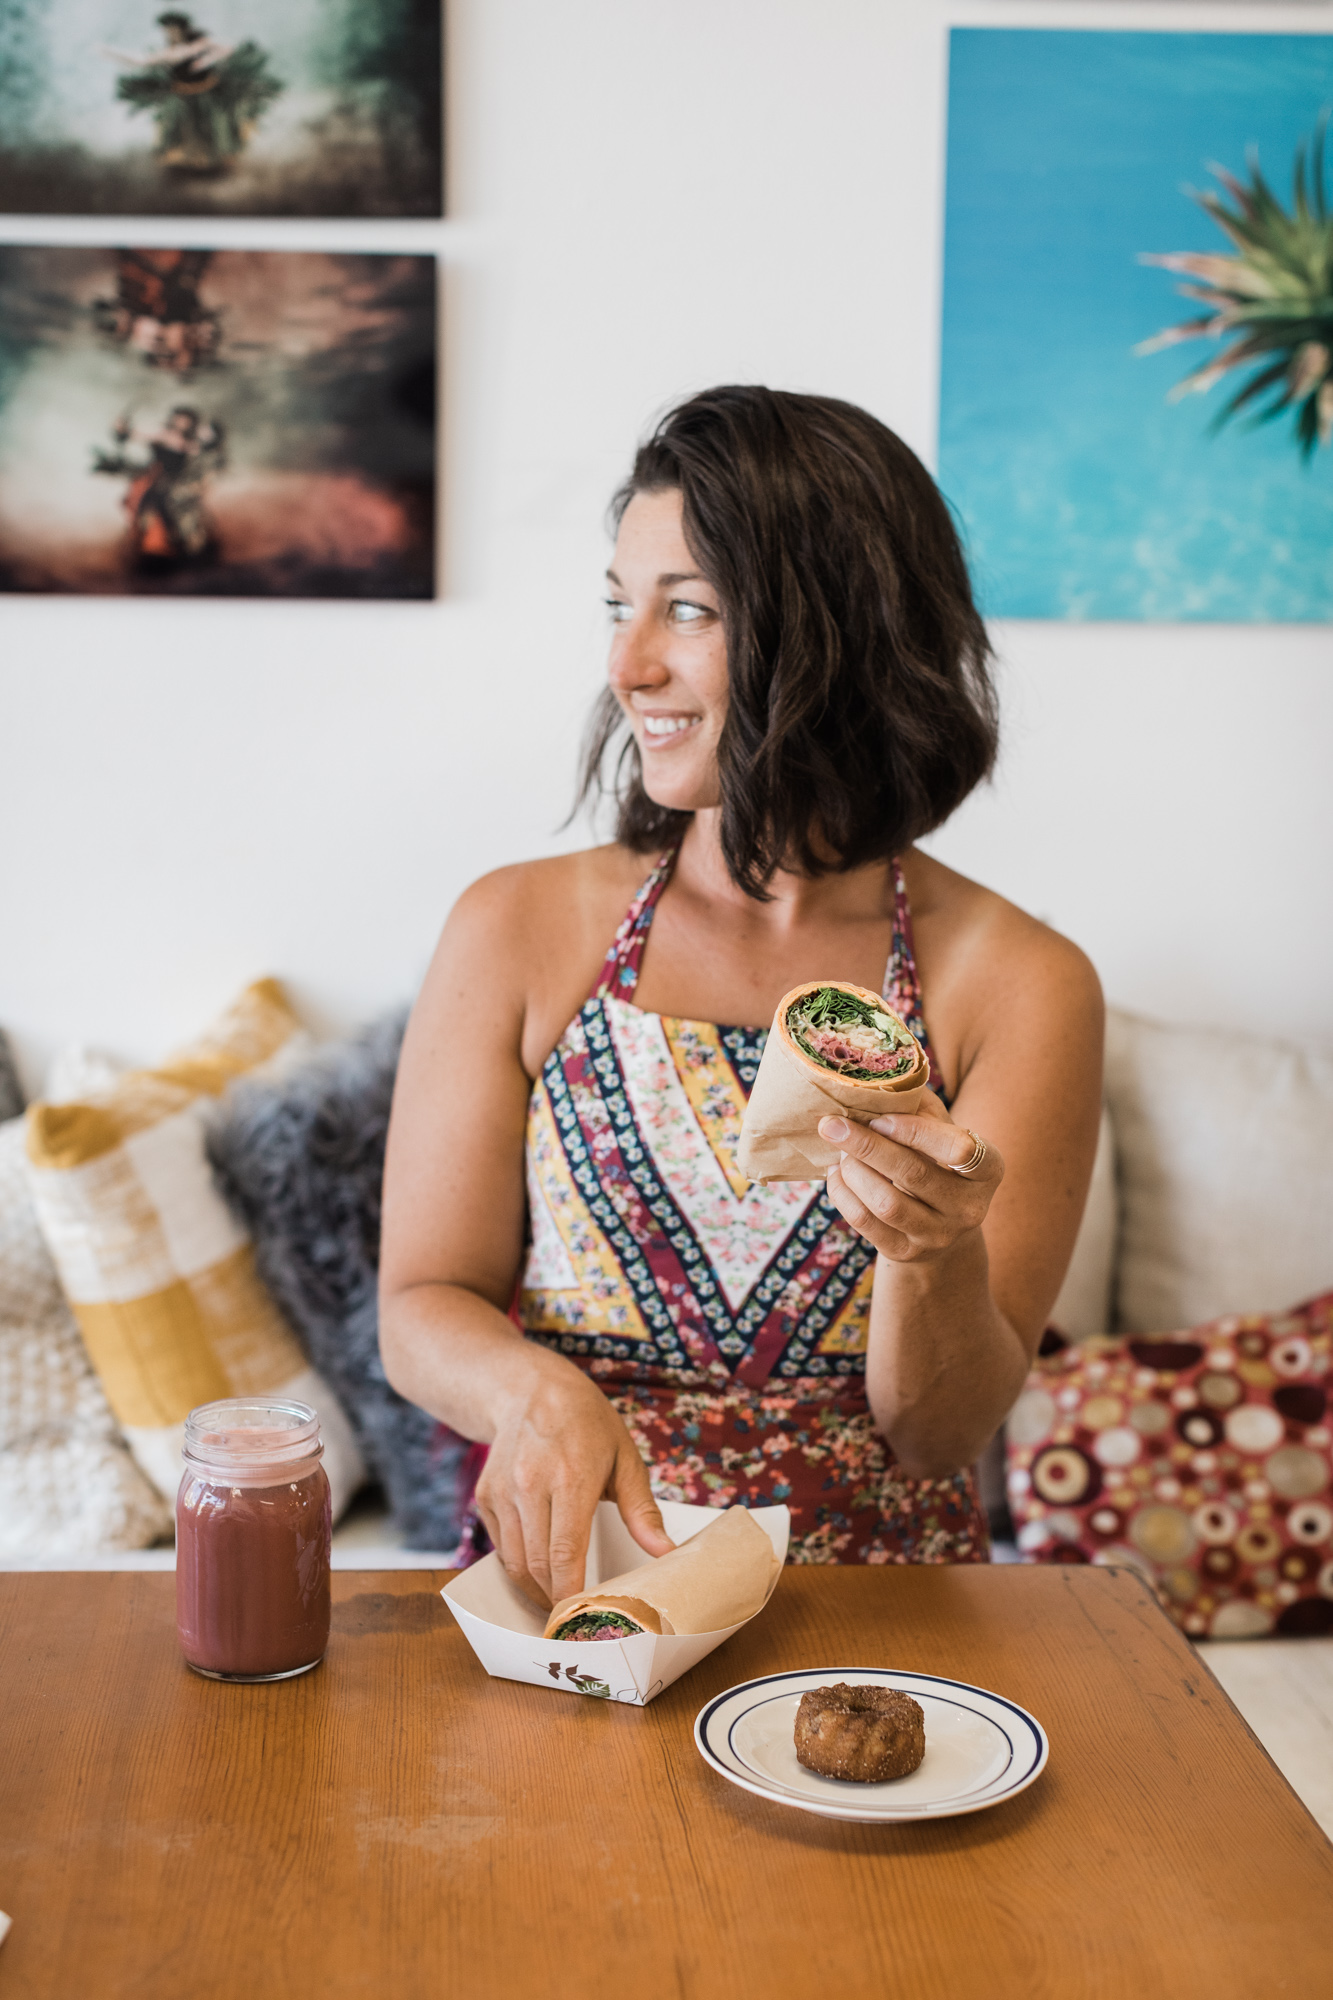 VeHealthy vegan and vegetarian food at That's A Wrap Cafe, Kihei Maui